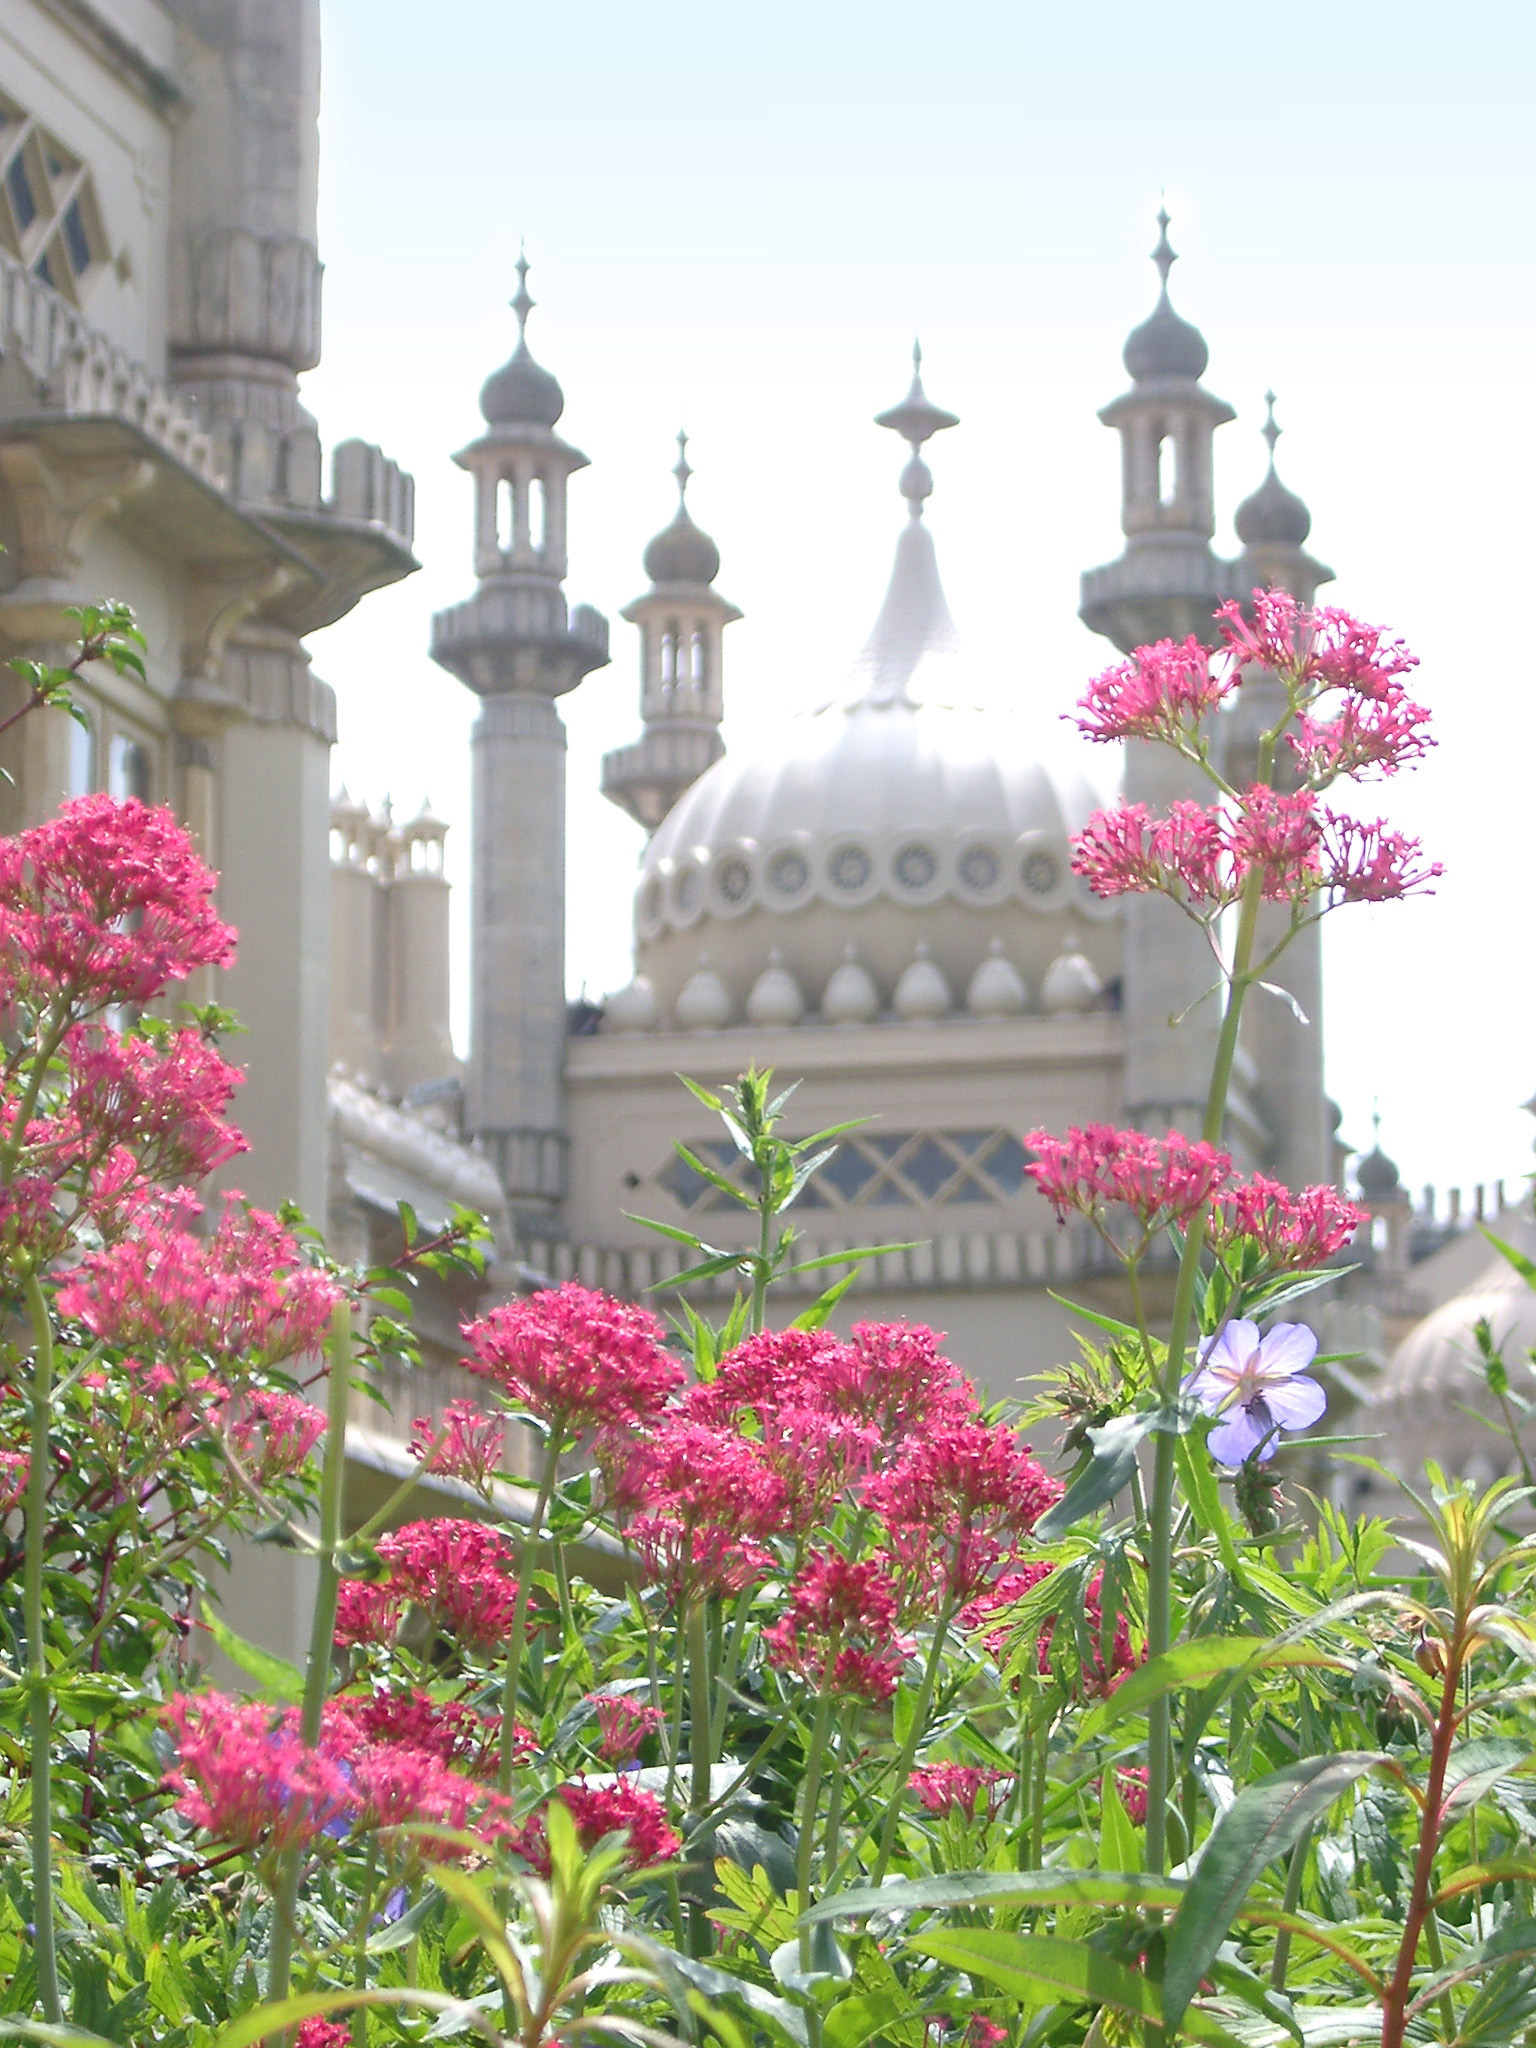 Attractive Fresh Red Flowers at the Back Garden of Famous Royal Pavilion Building, Located at Brighton, England.